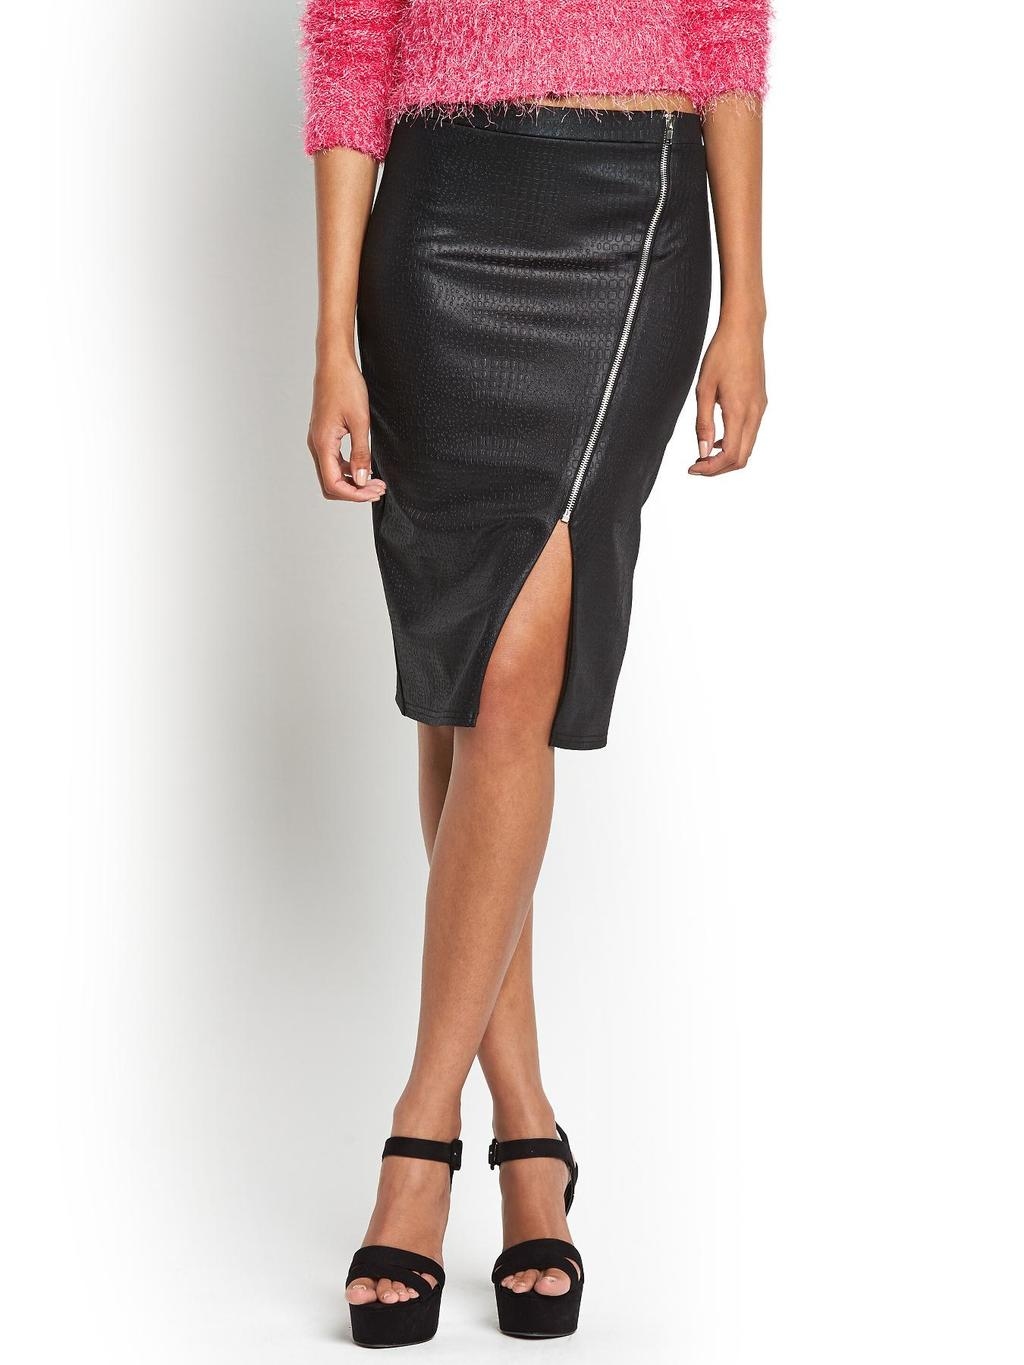 Michelle Keegan Embossed Zip Detail Pu Skirt, Black - pattern: plain; style: pencil; fit: tailored/fitted; waist: mid/regular rise; predominant colour: black; occasions: evening, occasion, creative work; length: on the knee; texture group: leather; pattern type: fabric; fibres: pvc/polyurethene - 100%; embellishment: zips; season: s/s 2014; wardrobe: highlight; embellishment location: waist